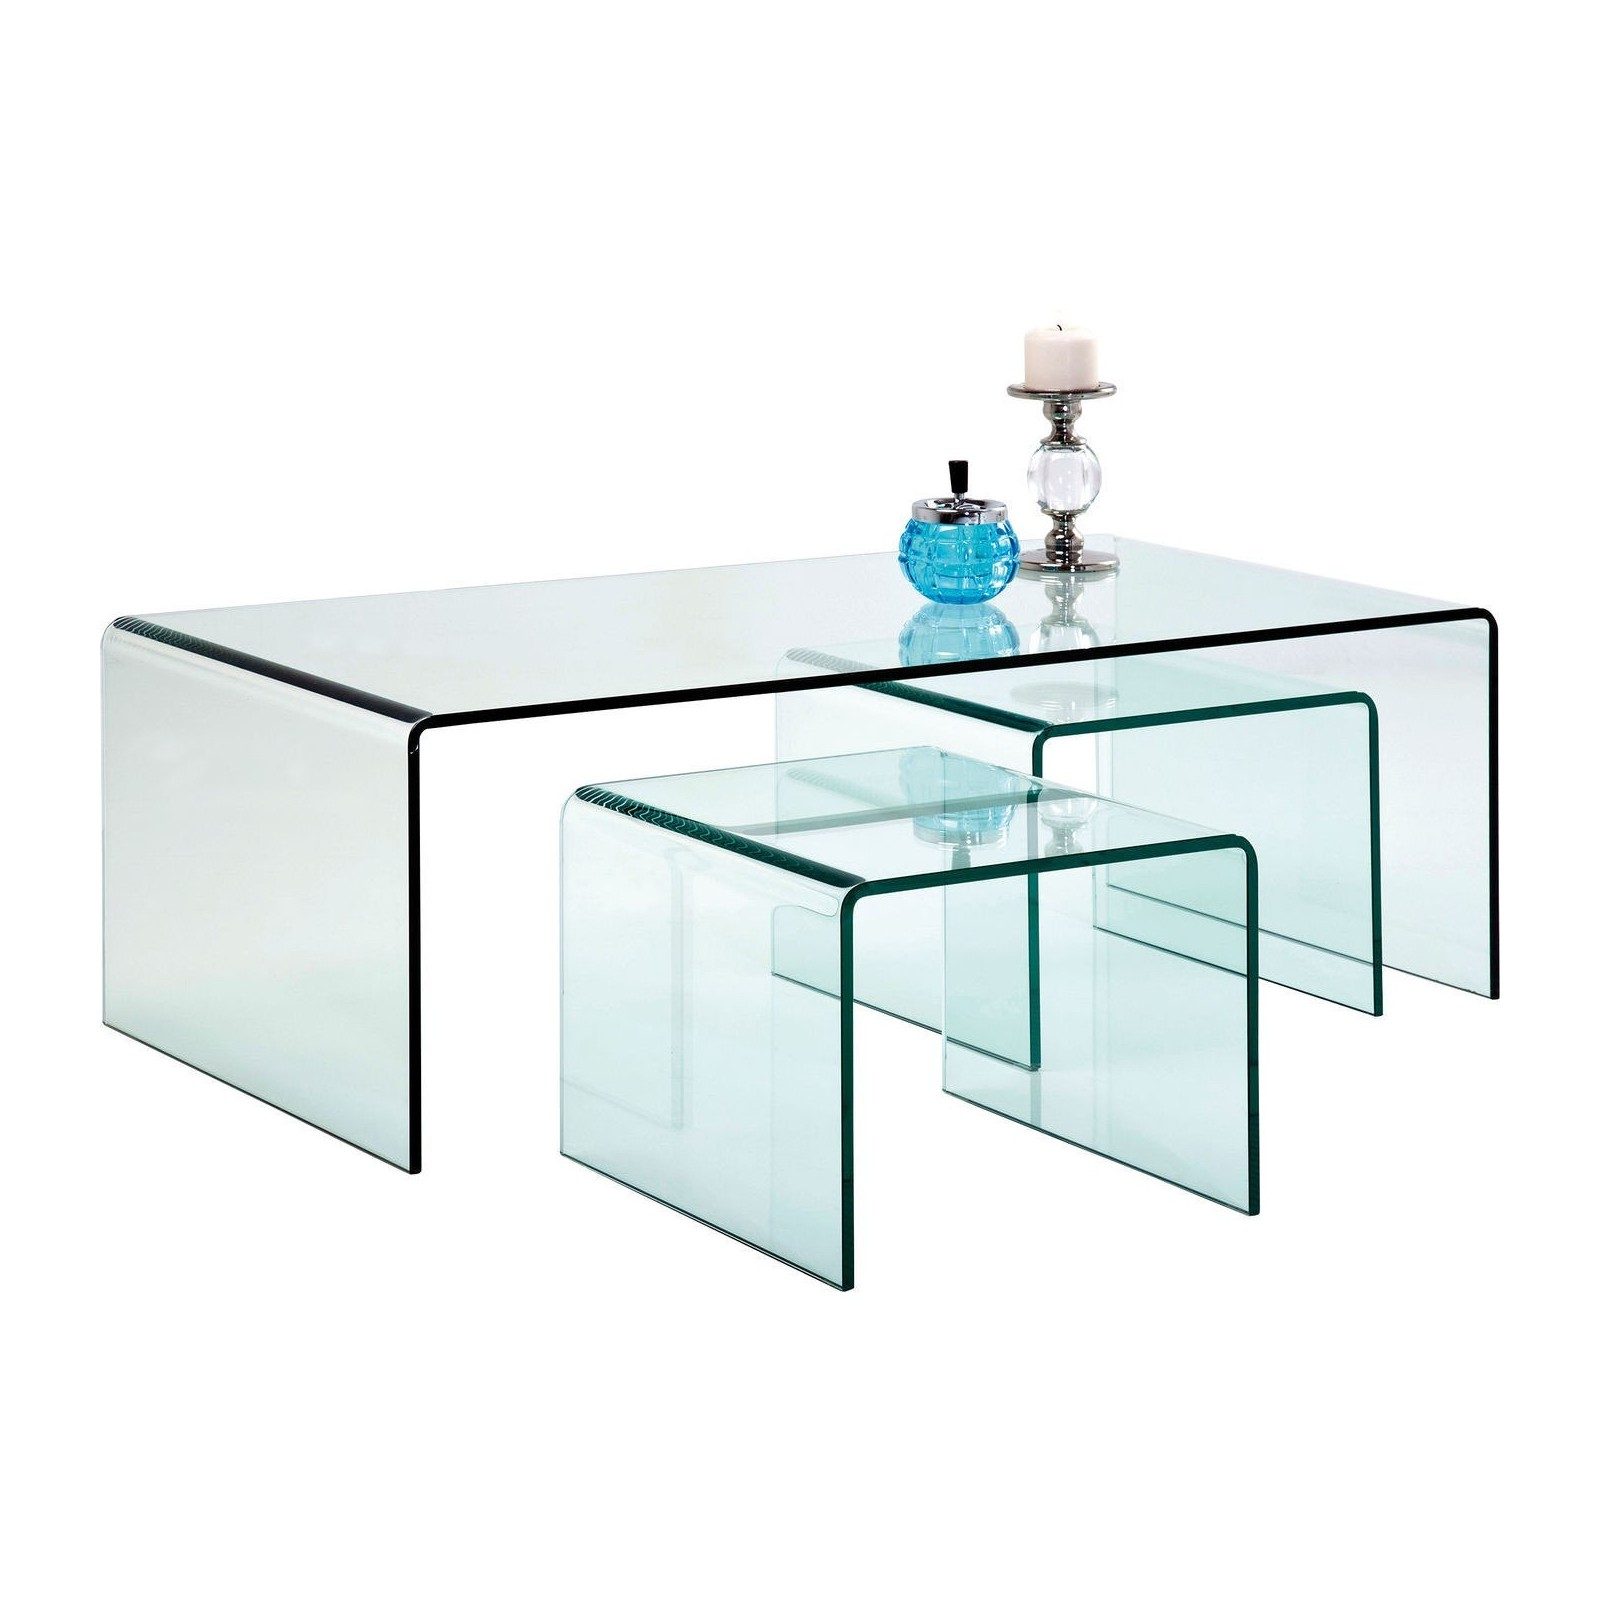 Table basse contemporaine en verre clear club kare design for Set de table verre